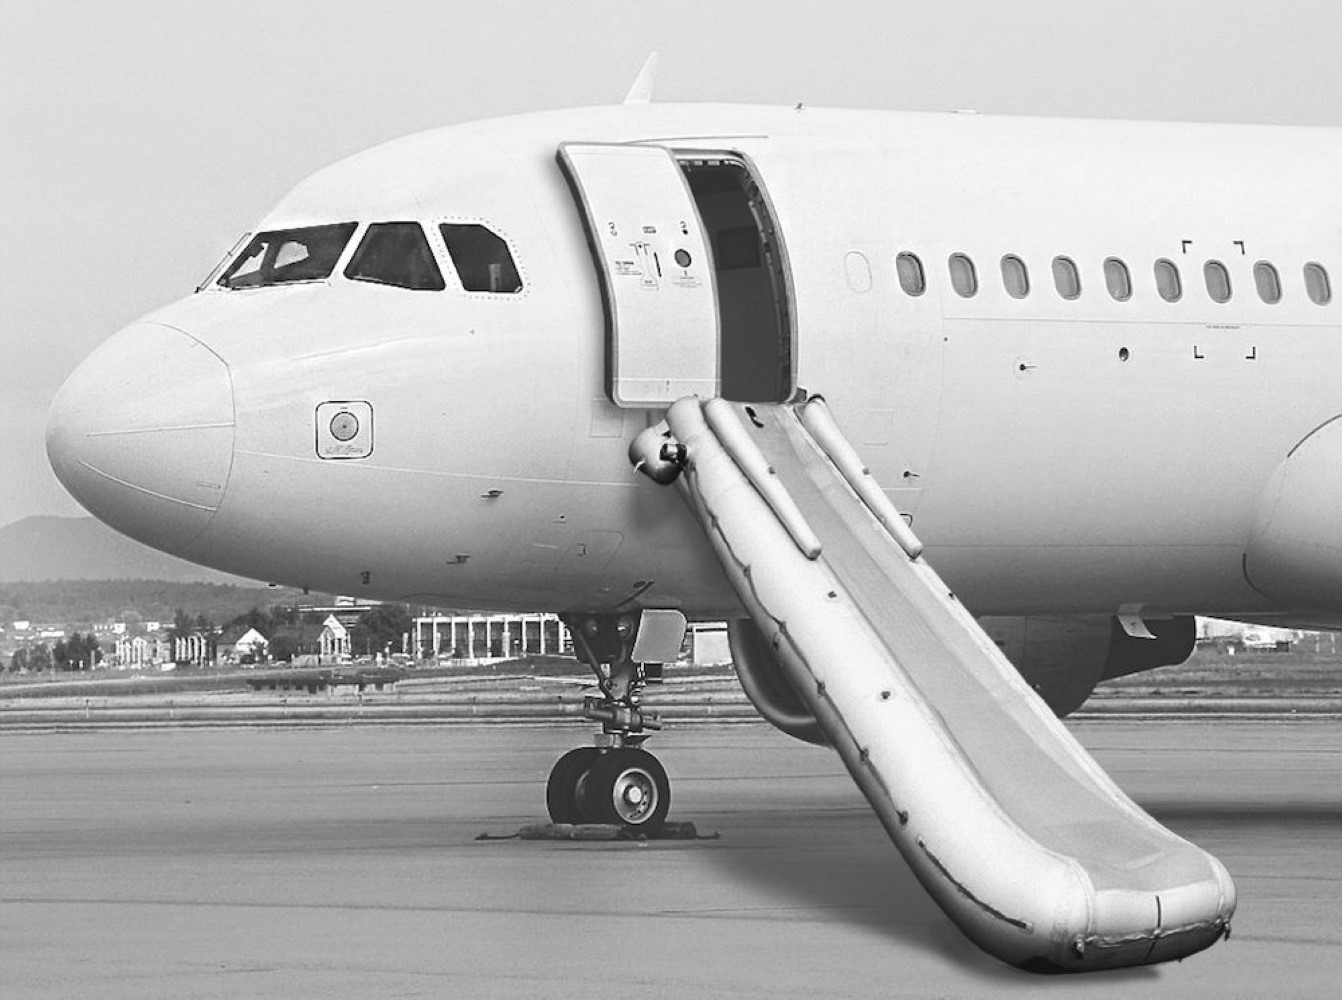 New evacuation slide enables LHT and EAM to add six seats to